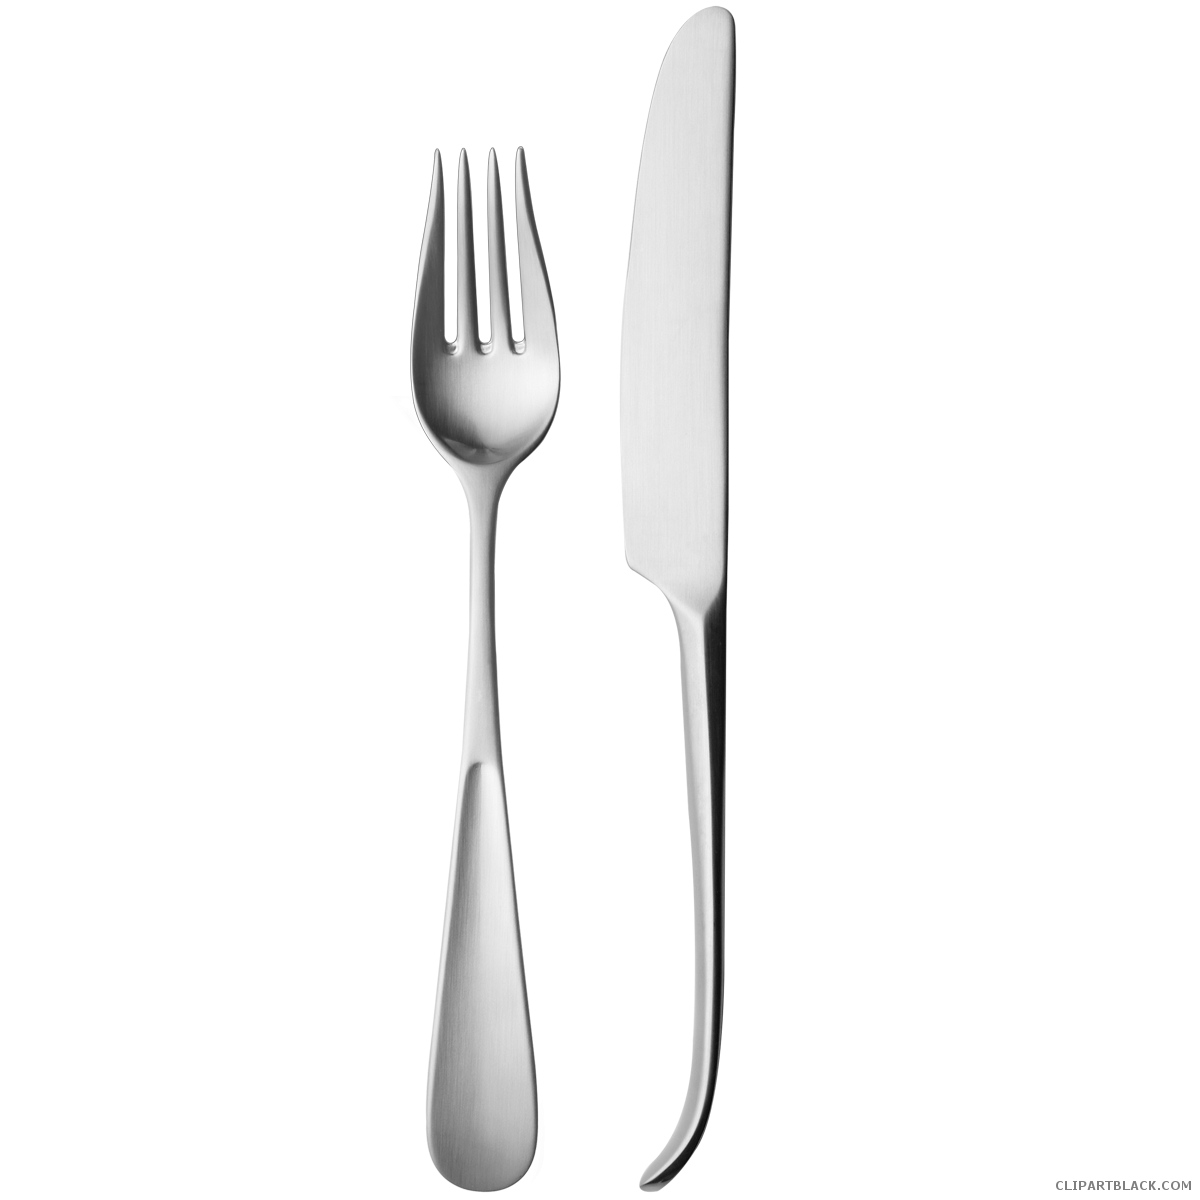 And knife clipartblack com. White clipart fork